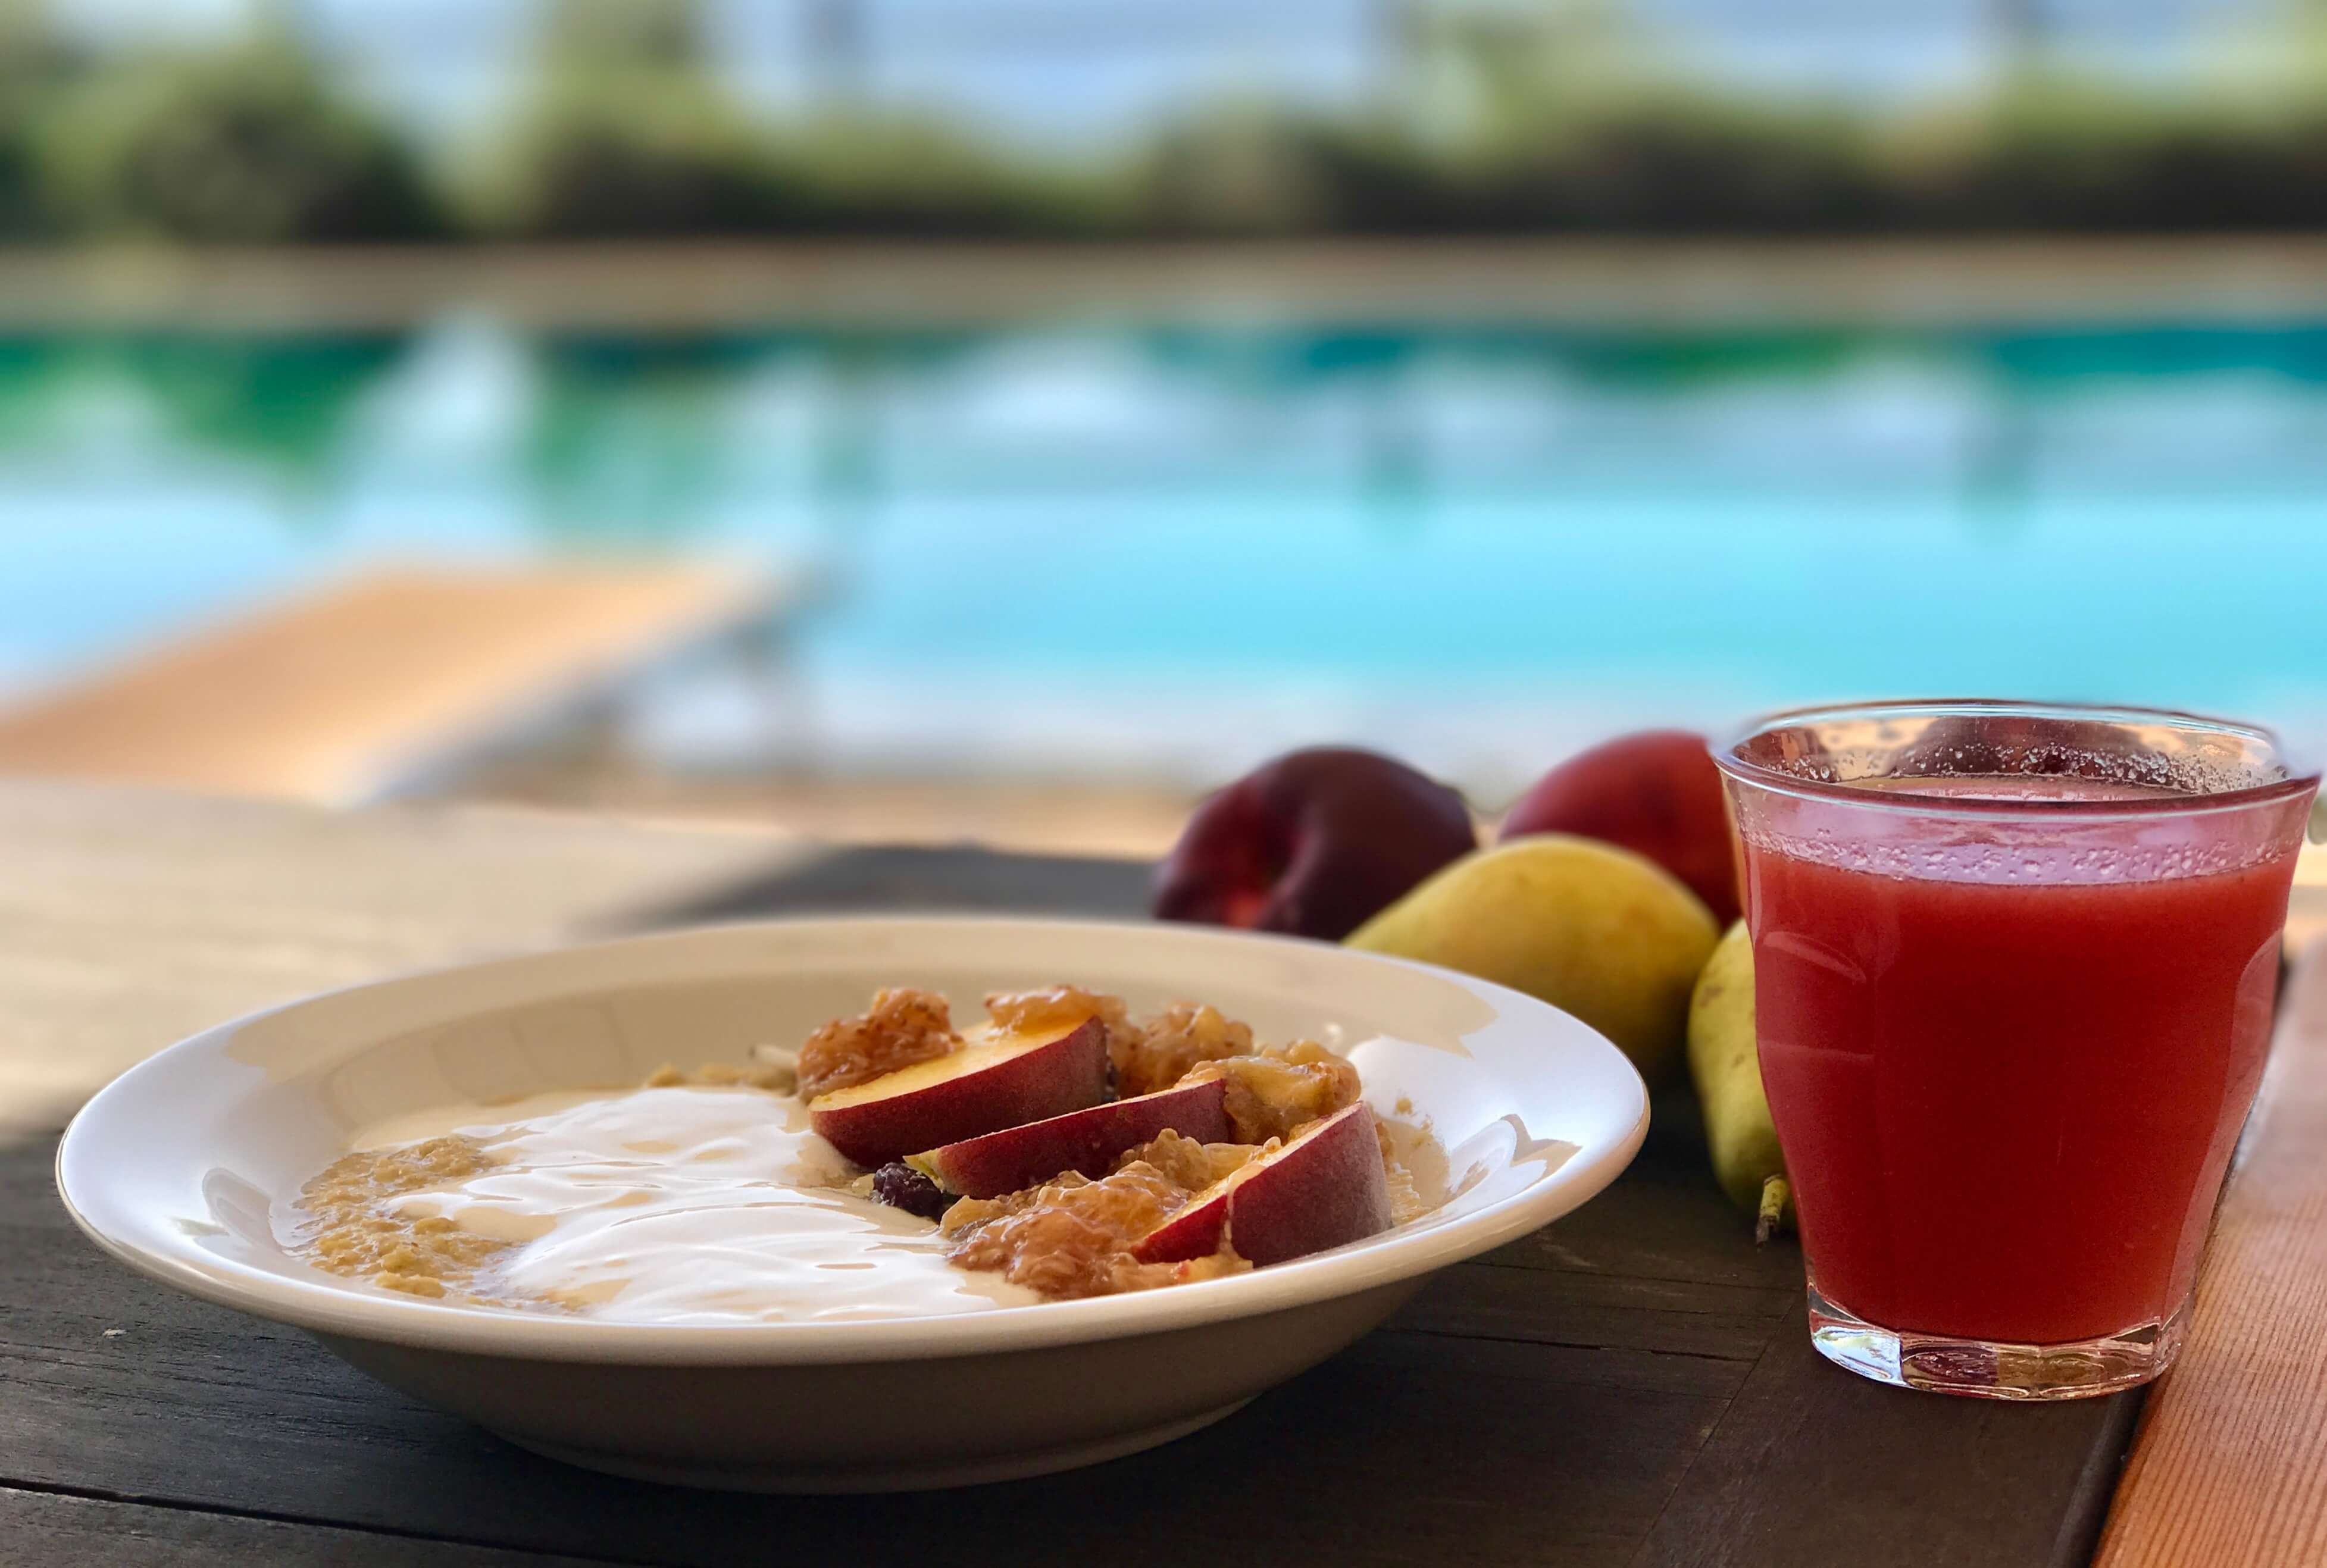 Yoga in Italy delicious breakfast with Amaranth porridge, sliced sun-ripened nectarines and fresh yogurt together with a freshly squeezed juice